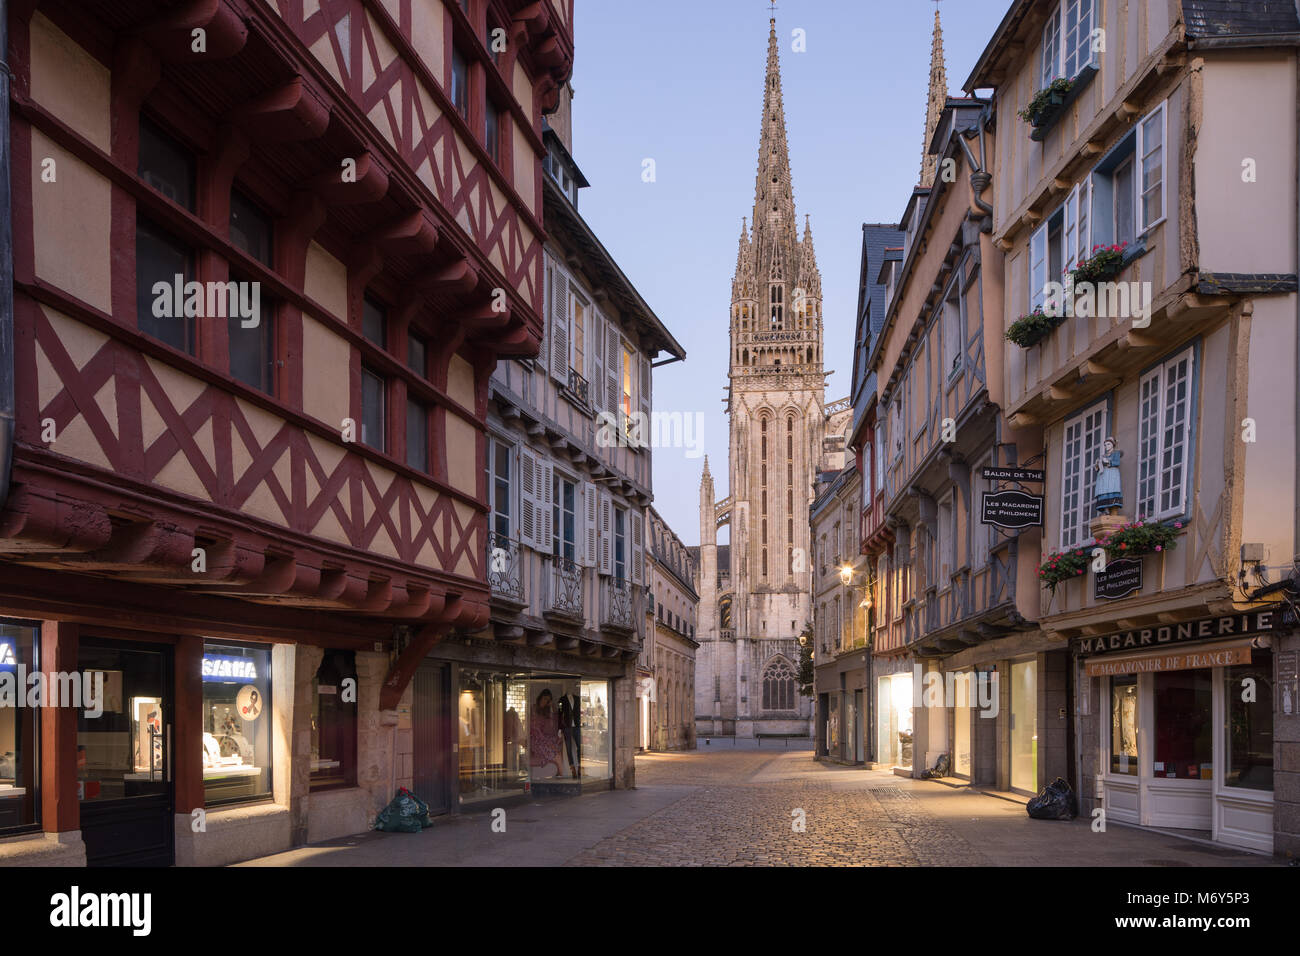 Cathedrale Saint Corentin And Rue Kereon At Night In The Old Town, Quimper,  Finisterre